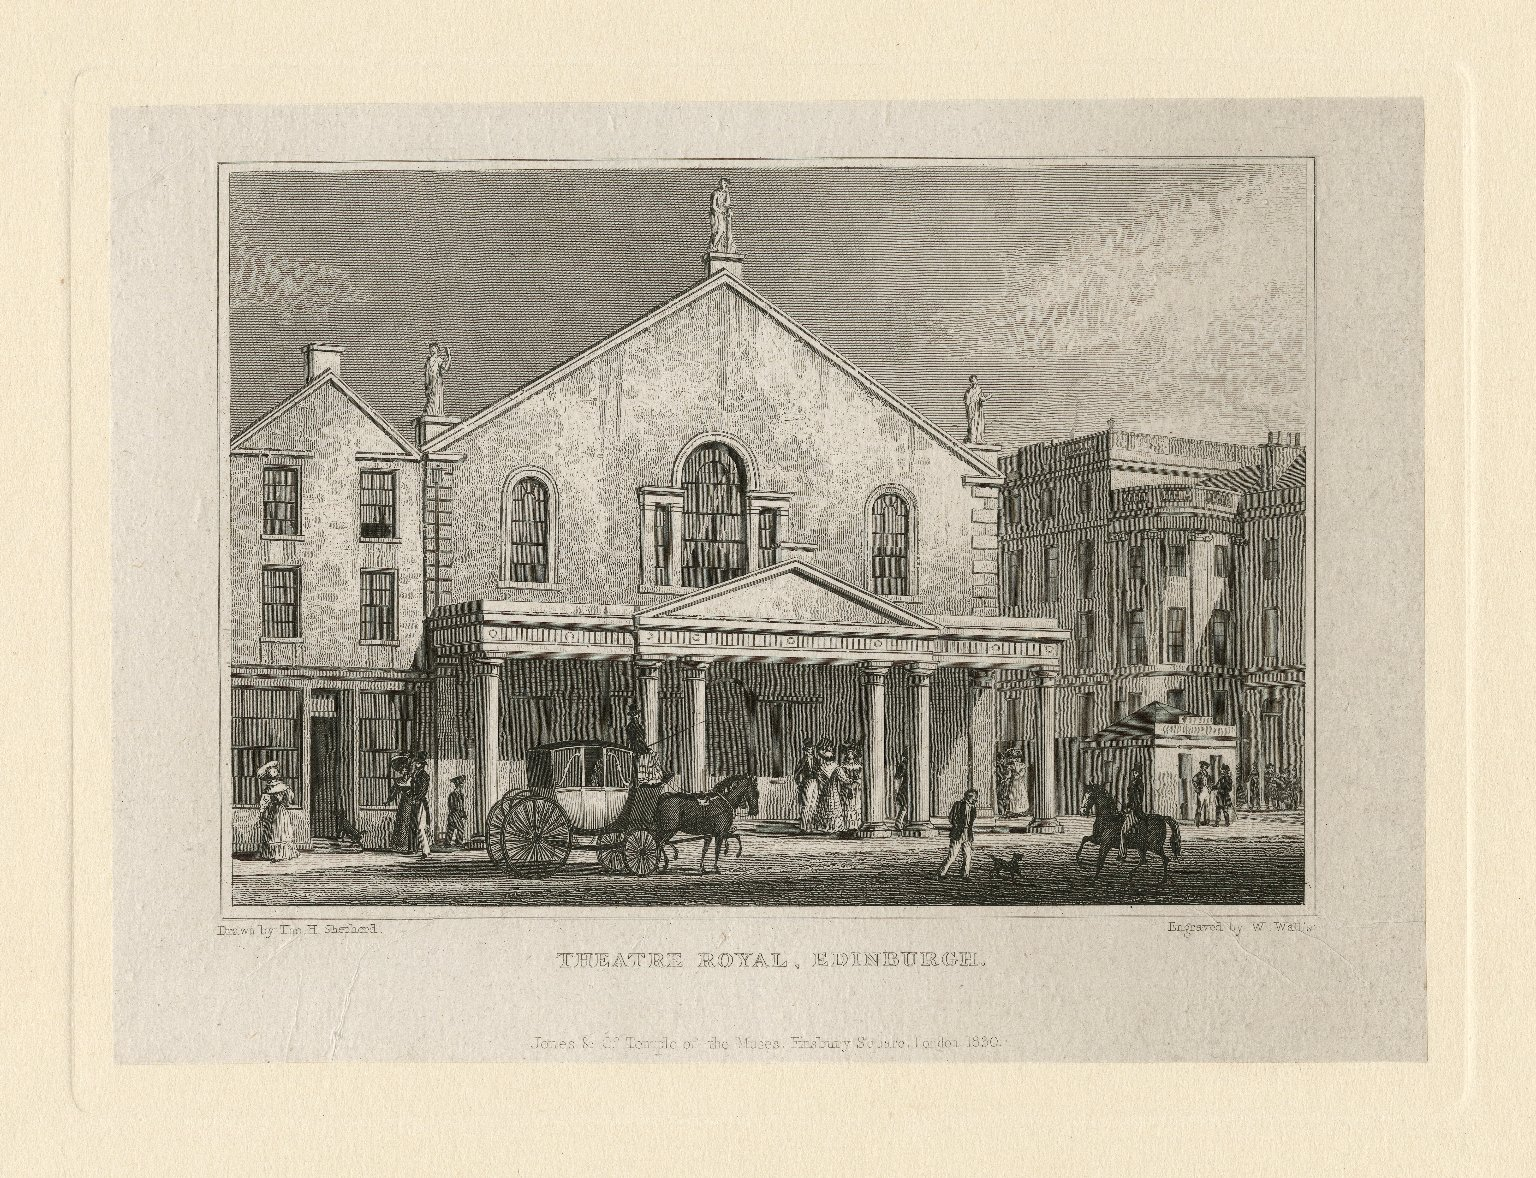 <b>Theatre Royal, Edinburg, 1830</b>     	</br>Exterior of the Theatre Royal, Edinburg, England, 1830</br><br/><b>Source: </b><i>William Wallis, Theatre Royal, Edinburgh (Call number: ART File E23.7 no.1), 1830, Folger Digital Image Collection, University of Cincinnati Libraries Digital Collections, University of Cincinnati, http://digproj.libraries.uc.edu:8180/luna/servlet/s/bojoj4</i>